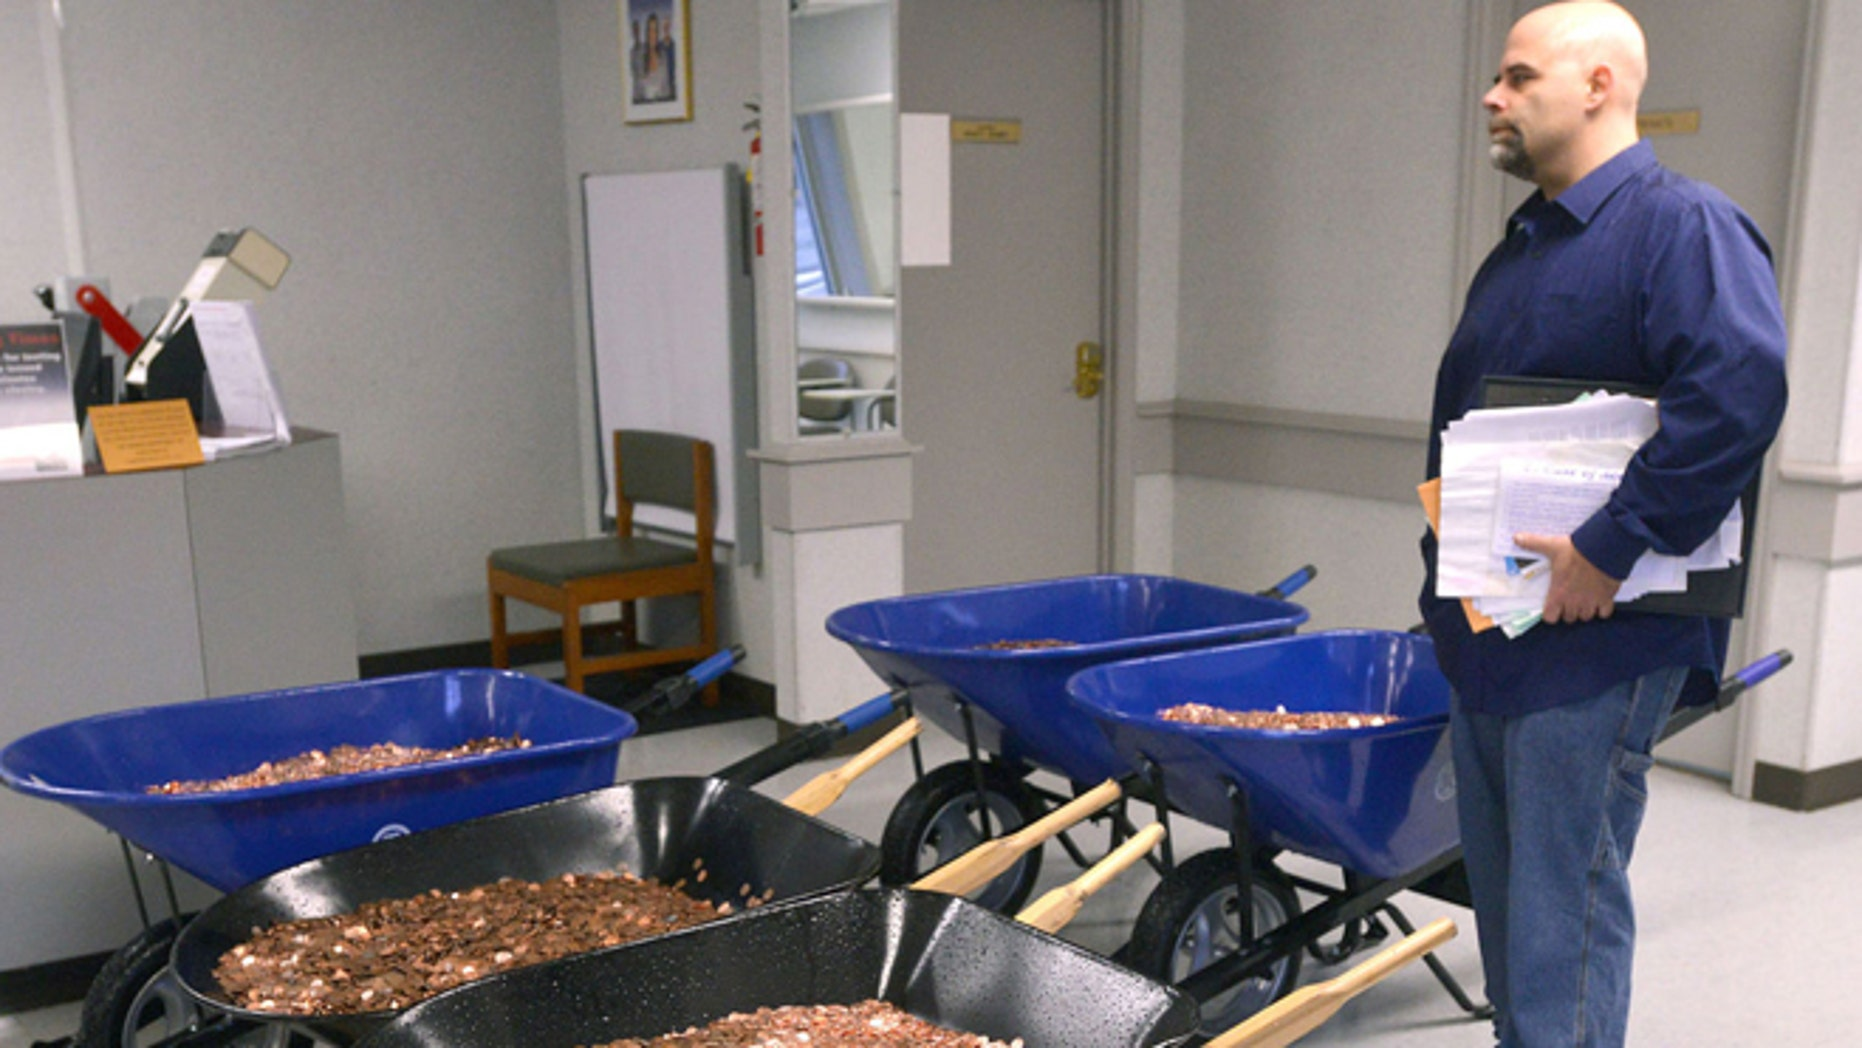 Nick Stafford waits on line at local DMV with five wheelbarrows full of pennies. (David Crigger/Bristol Herald Courier)